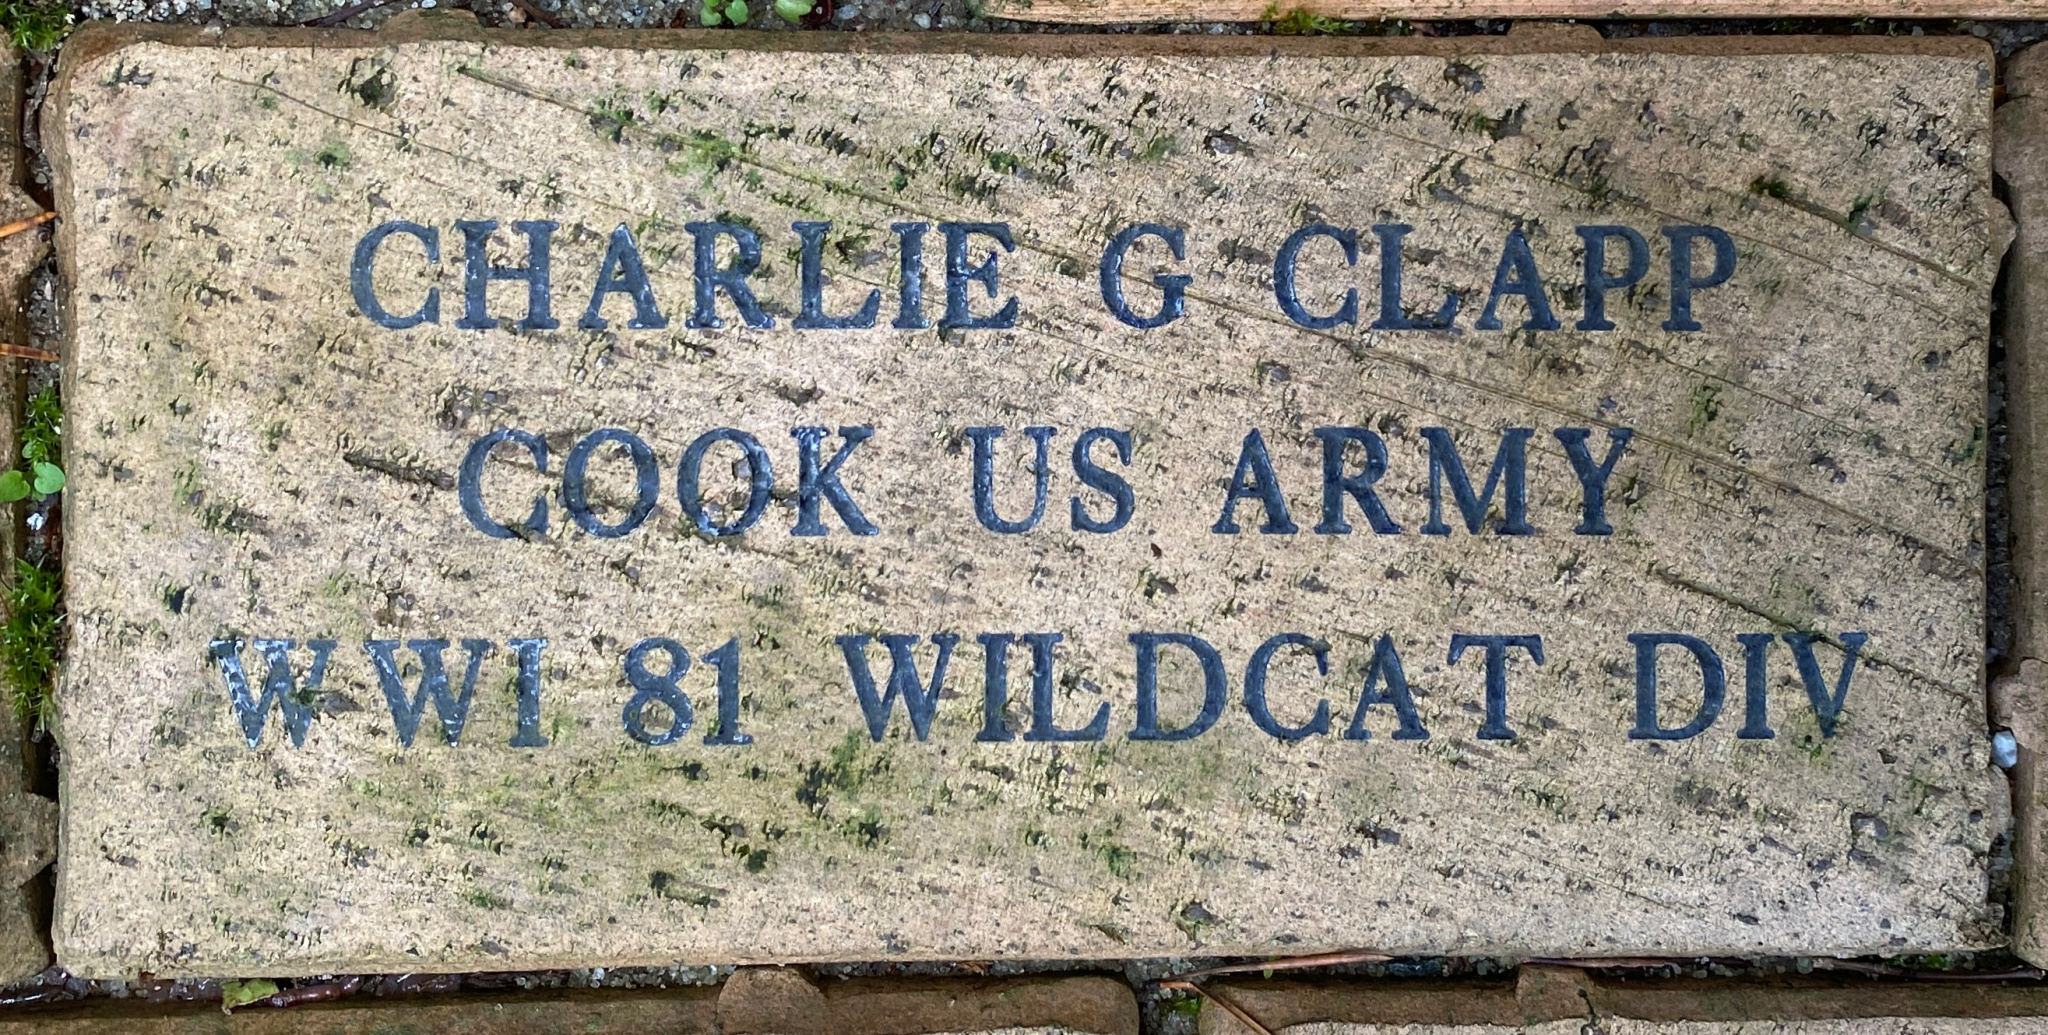 CHARLIE G CLAPP COOK US ARMY WWI 81 WILDCAT DIV